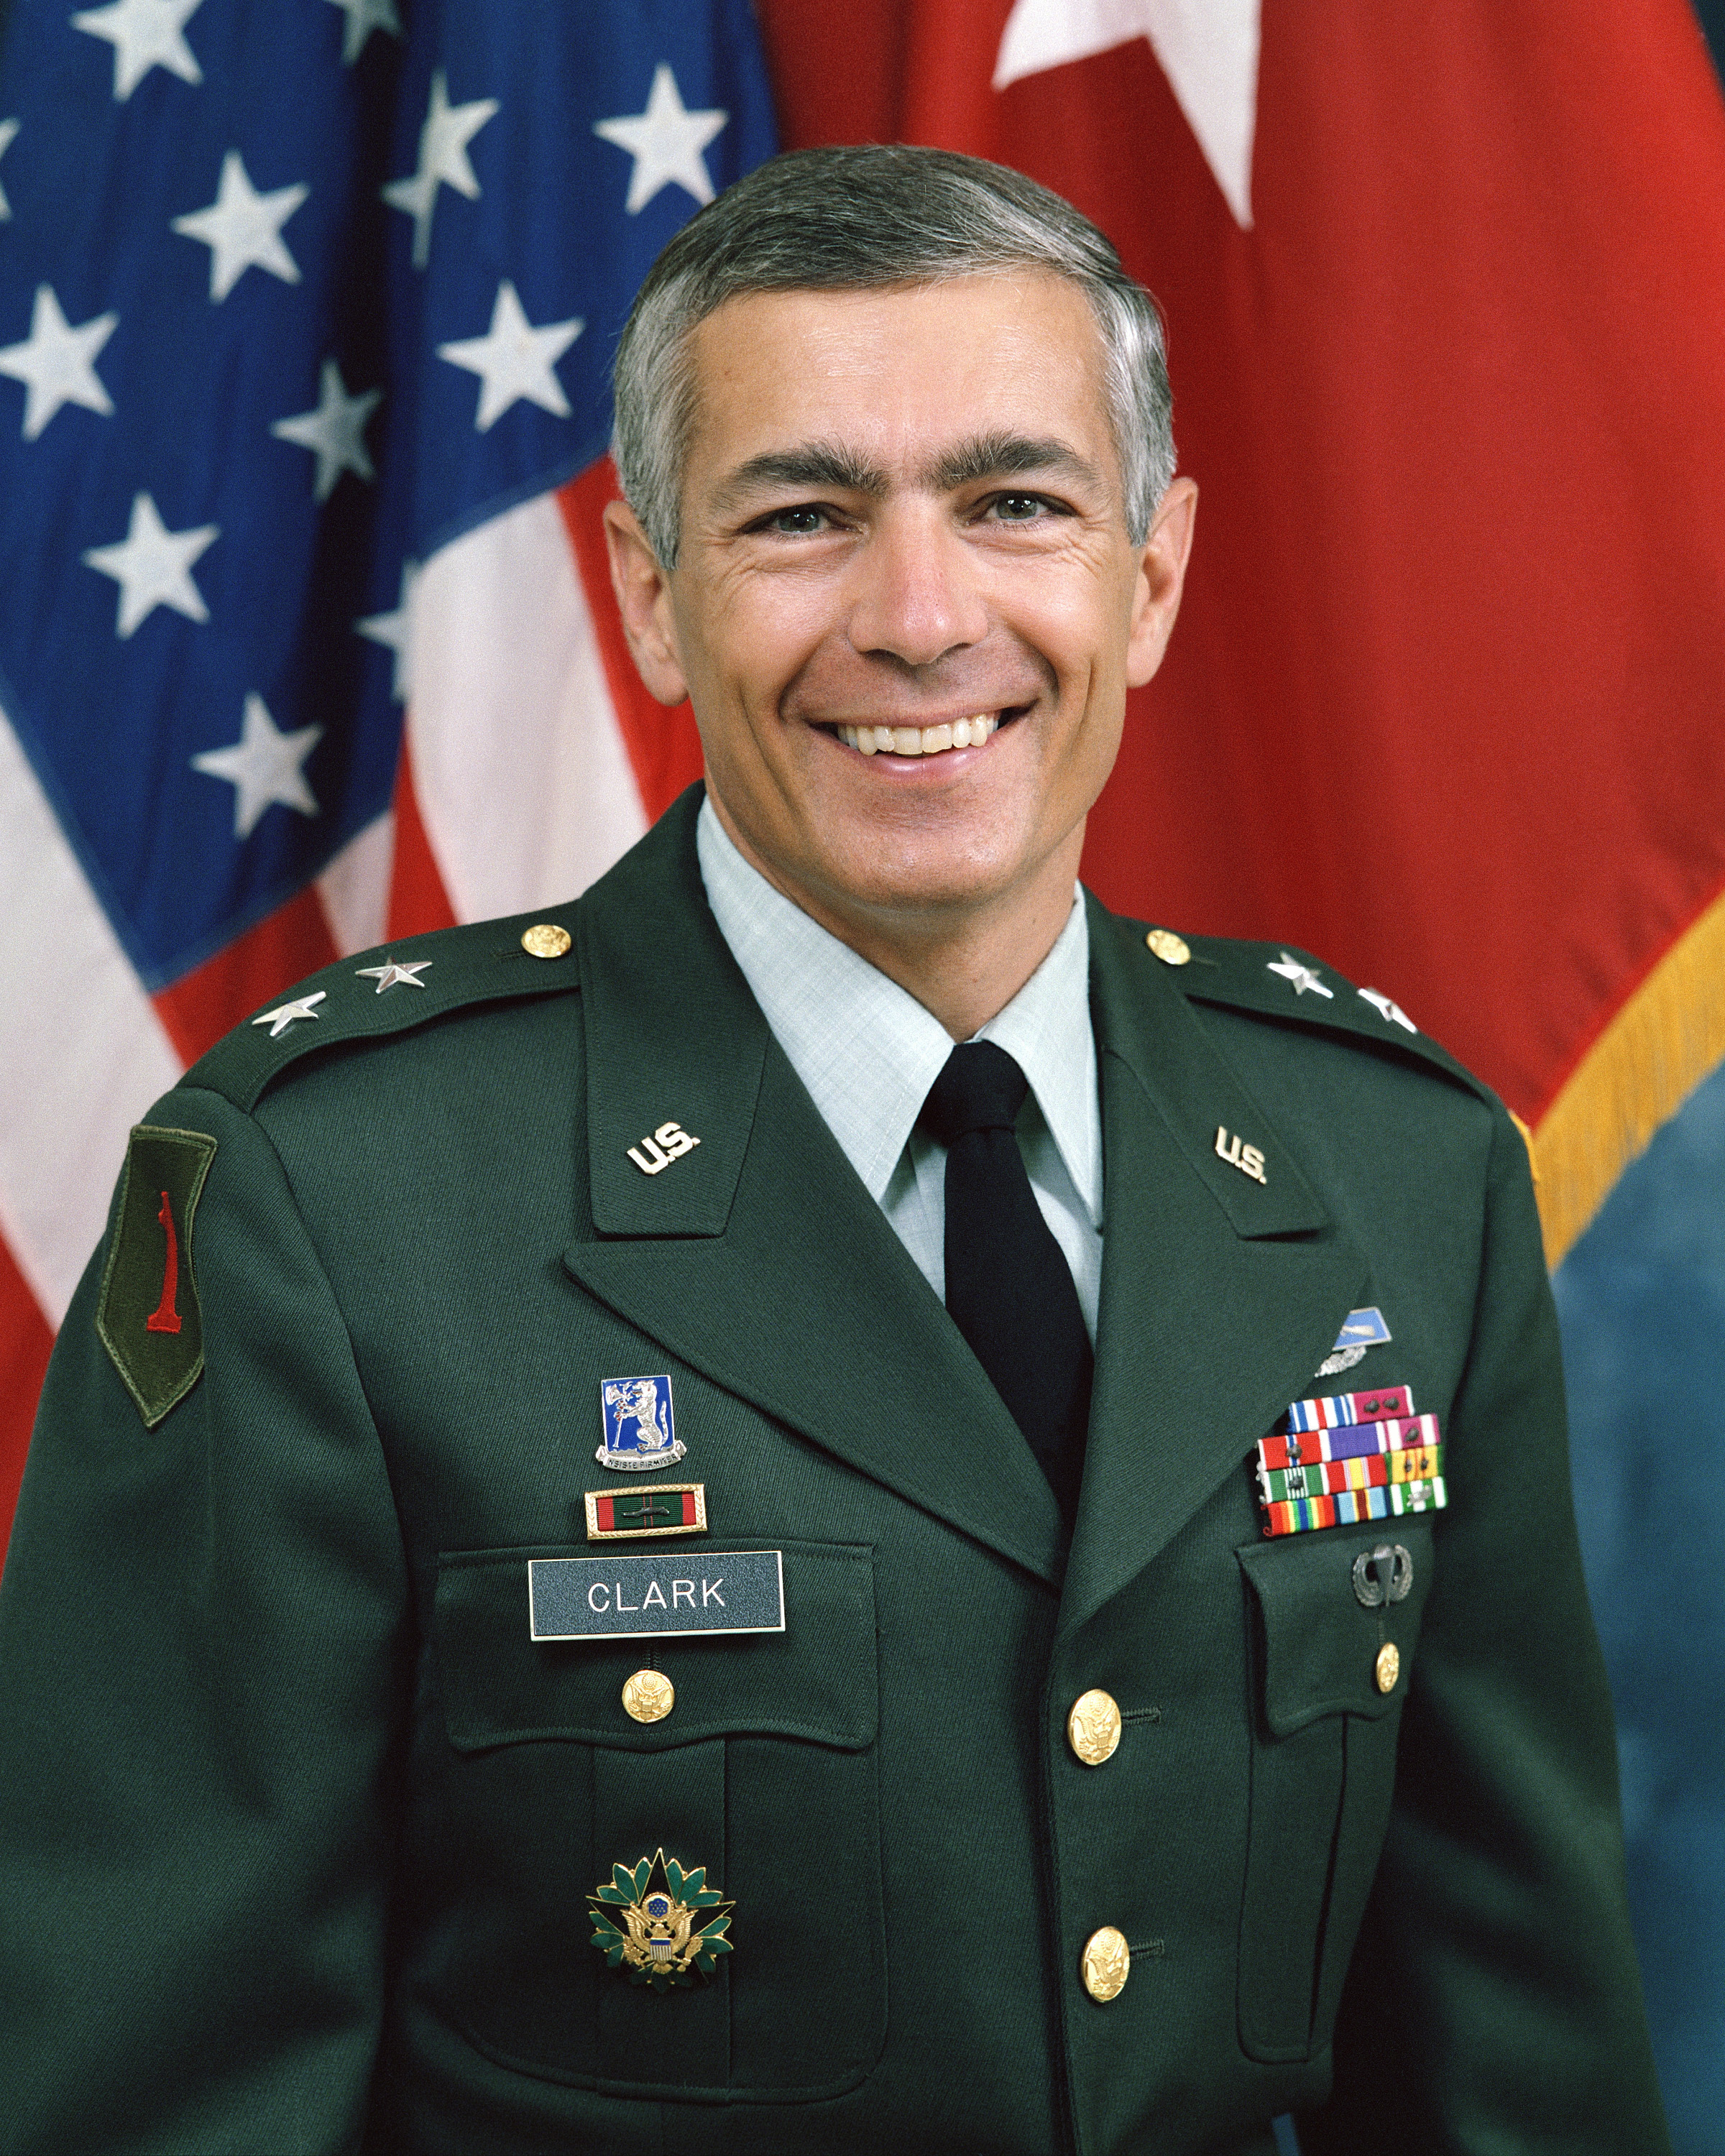 File:General Wesley Clark, official military photo, 1992.JPEG - Wikimedia Commons